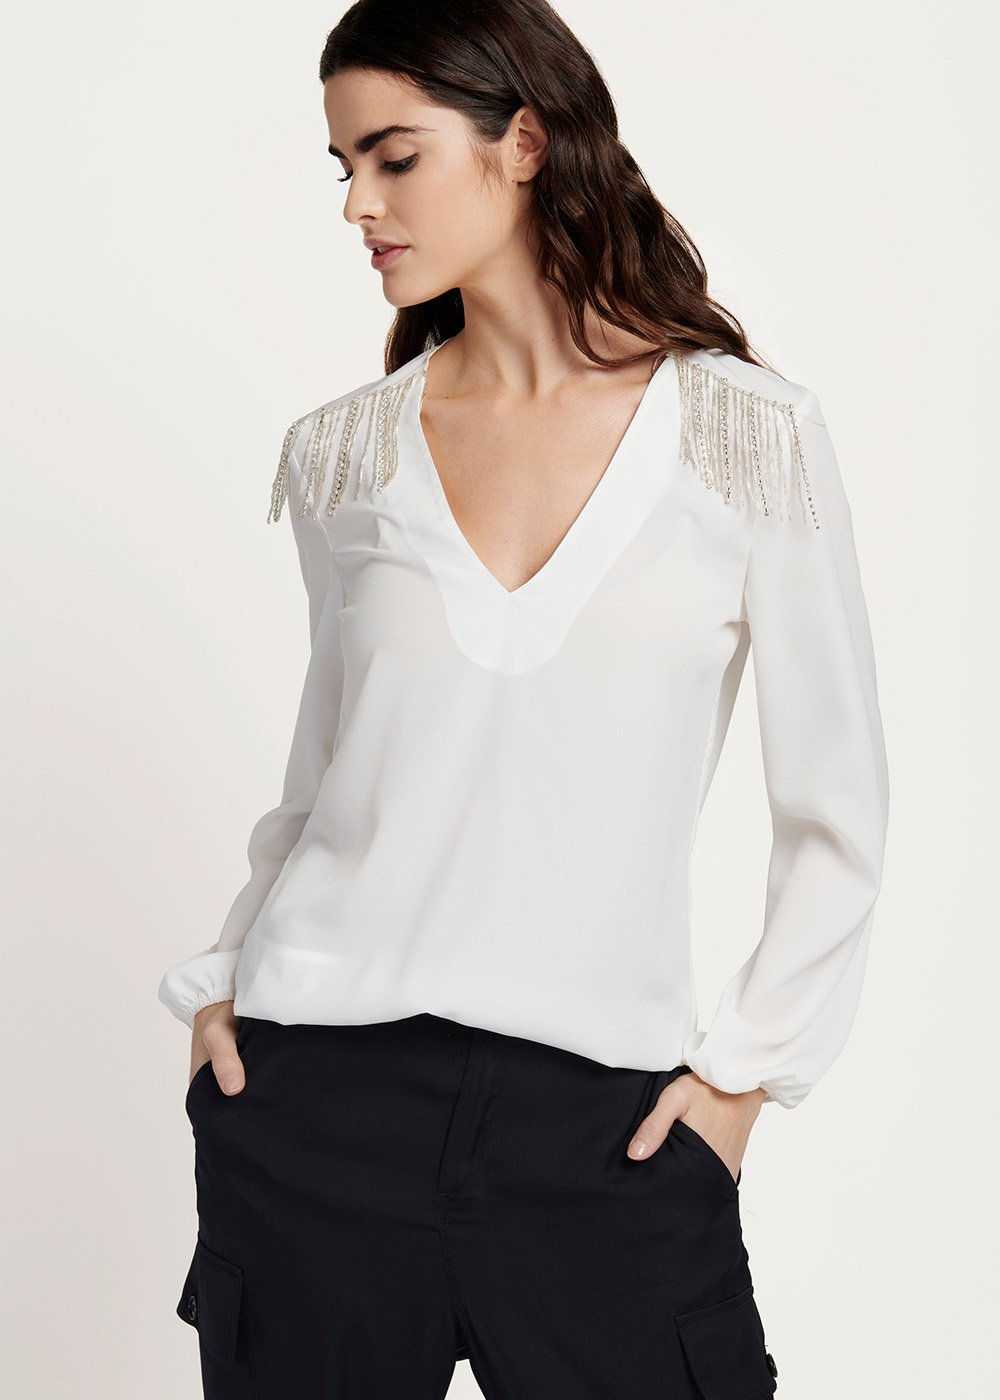 Calin v-neck blouse with appliques on the shoulders - White - Woman